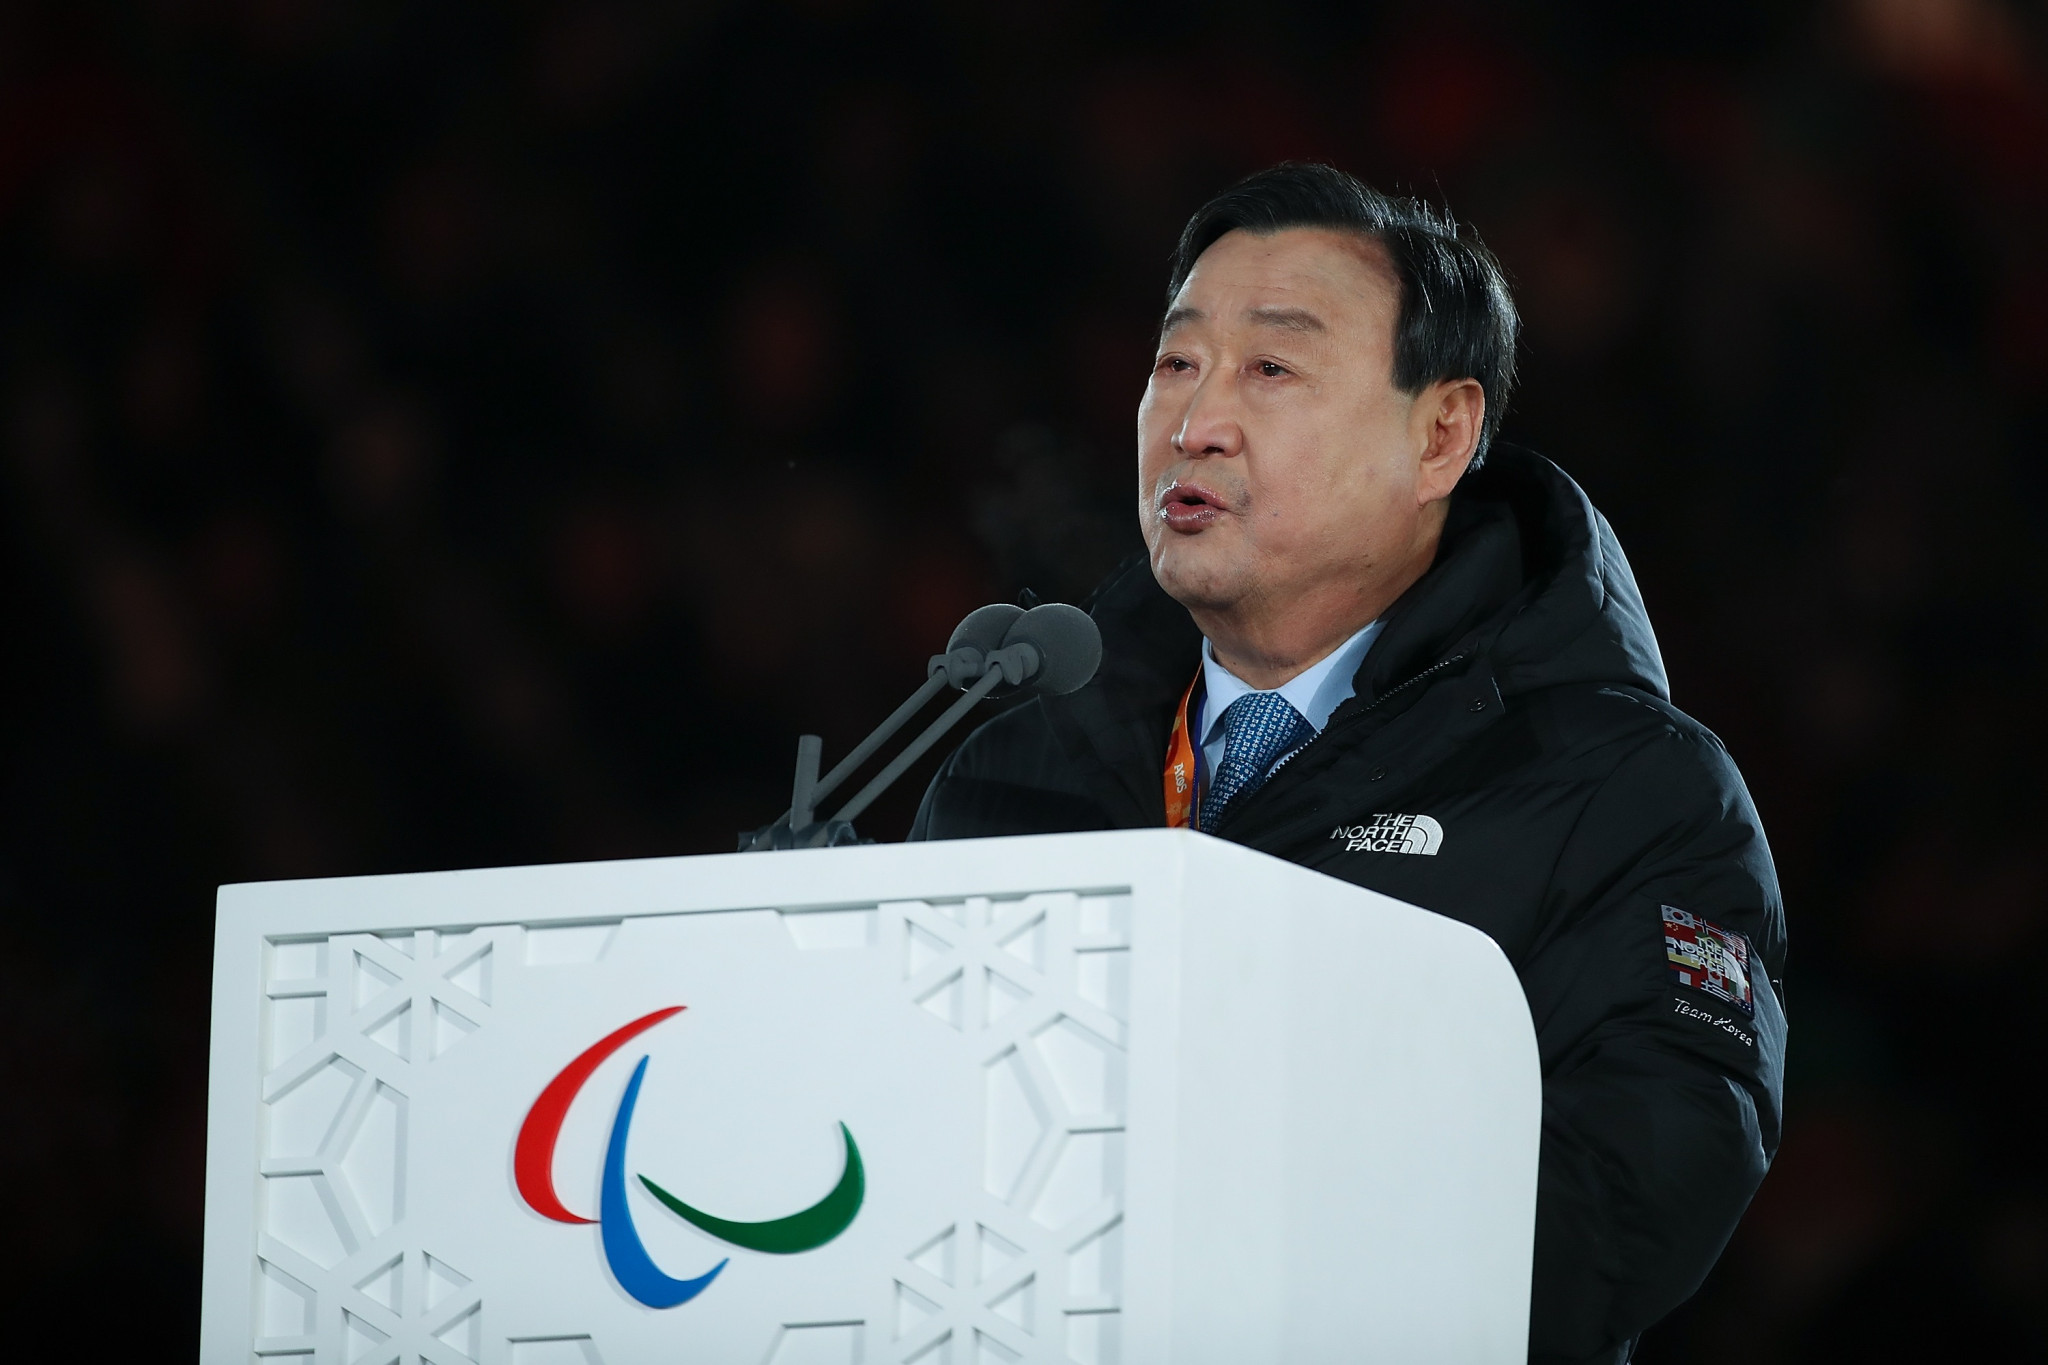 Pyeongchang 2018 President among six recipients of Paralympic Order